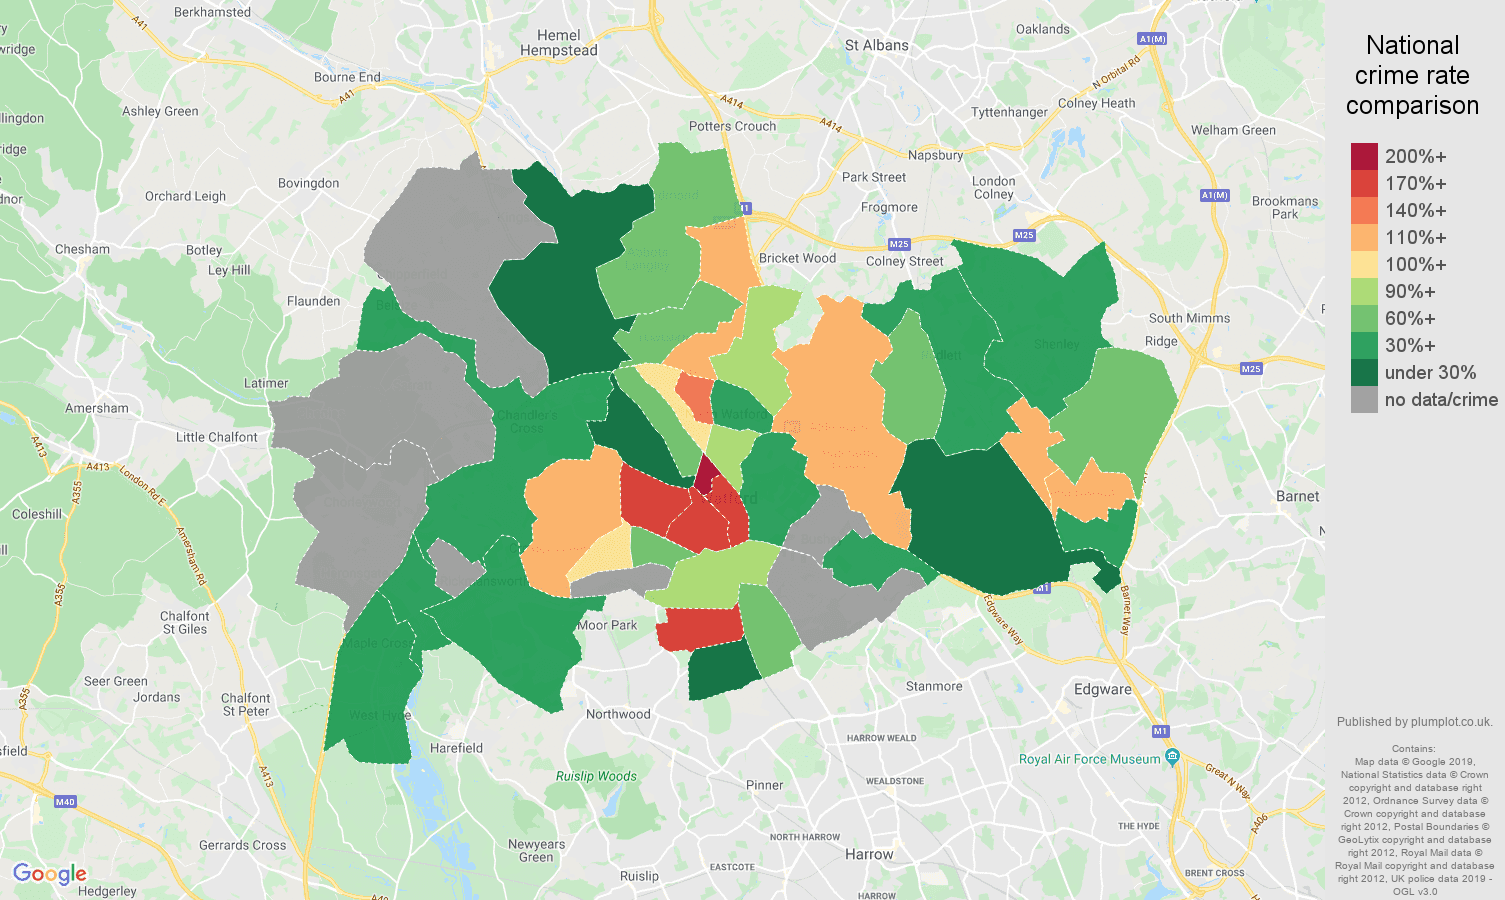 Watford possession of weapons crime rate comparison map